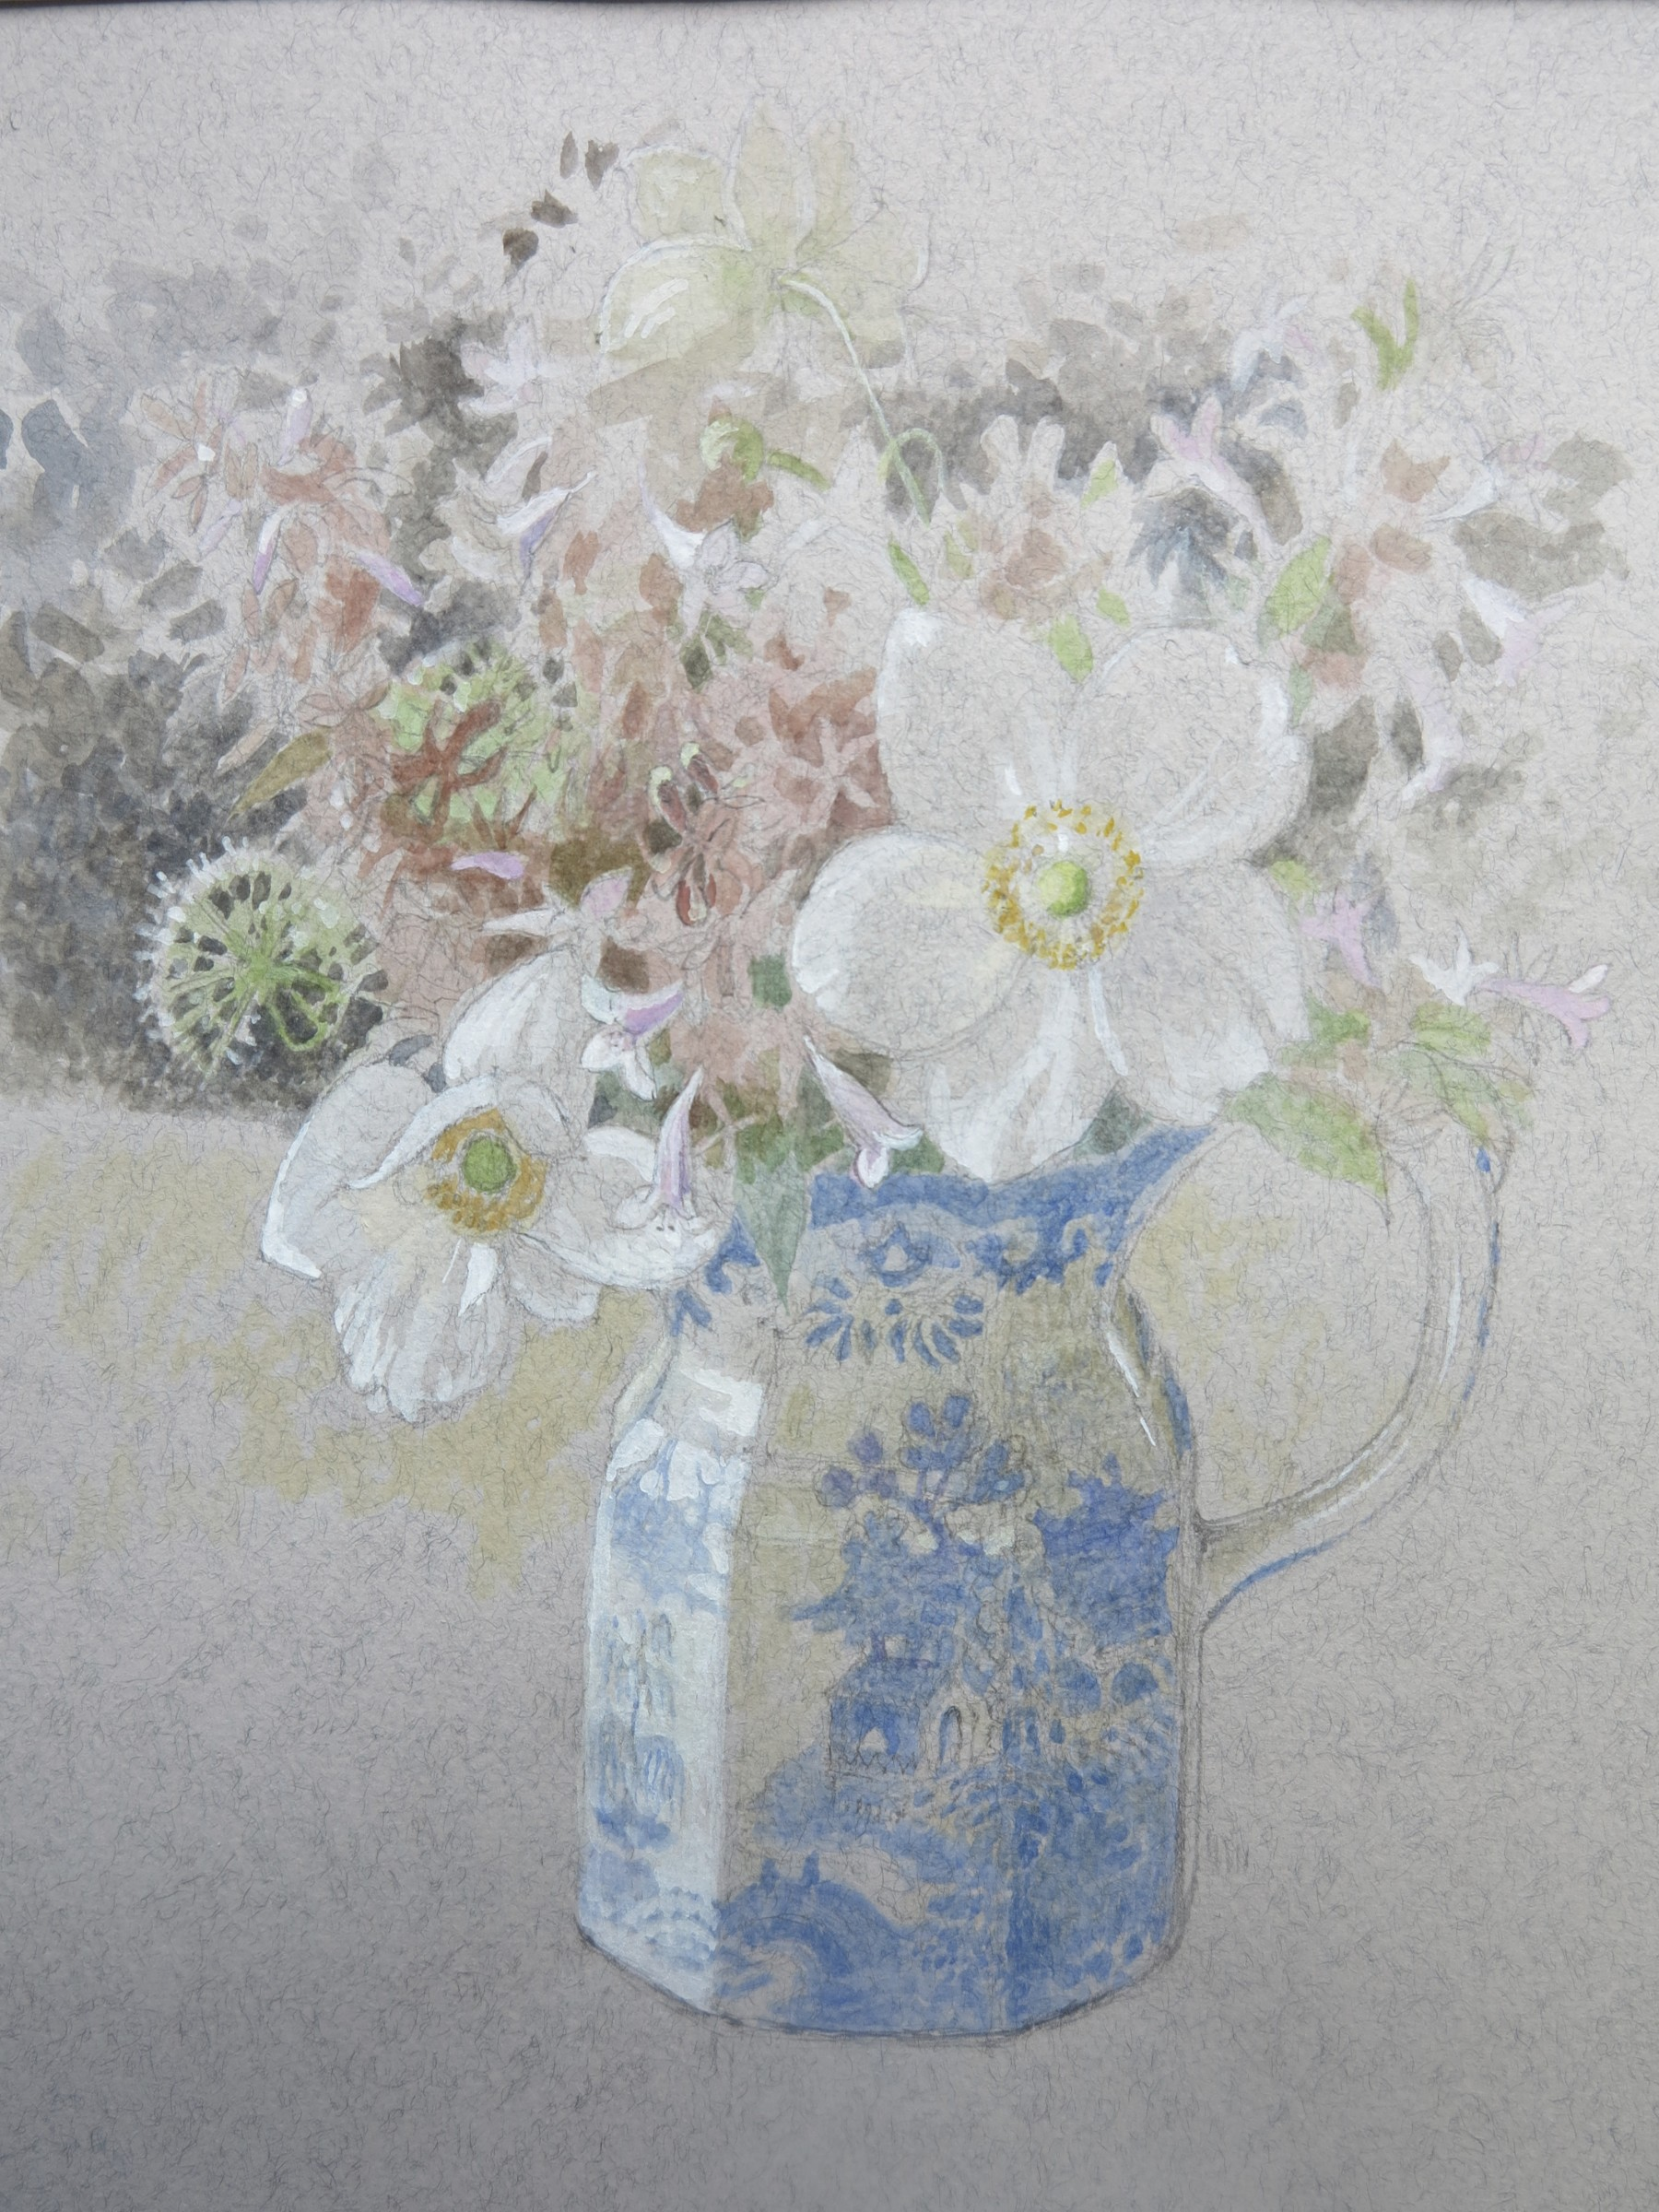 """<span class=""""link fancybox-details-link""""><a href=""""/artists/66-charlotte-halliday/works/9508-charlotte-halliday-august-flowers-from-st.-magnus/"""">View Detail Page</a></span><div class=""""artist""""><span class=""""artist""""><strong>Charlotte Halliday</strong></span></div><div class=""""title""""><em>August Flowers from St. Magnus</em></div><div class=""""medium"""">watercolour & pencil</div><div class=""""price"""">£475.00</div>"""